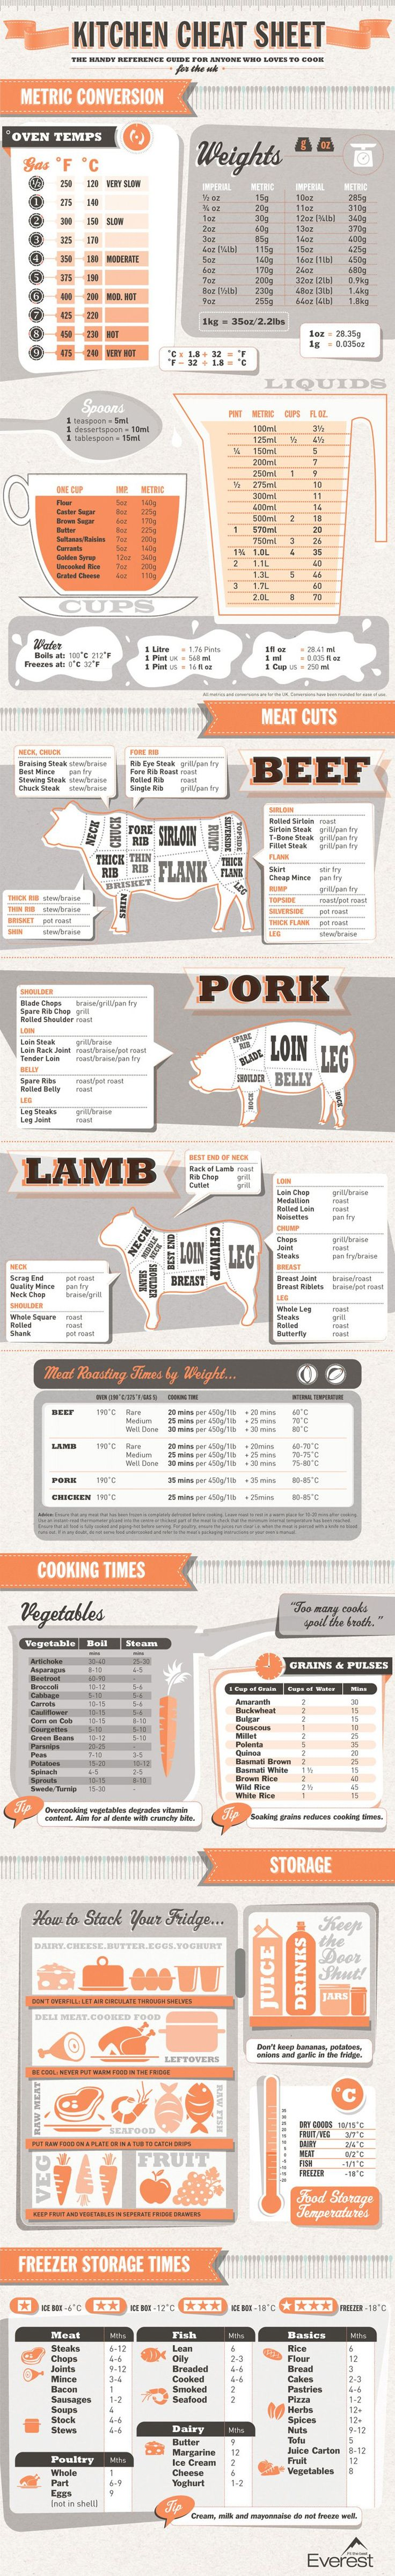 I think everyone (not just the foodies!) would really love this infographic we have today from Everest. Kitchen Cheat Sheet reveals exciting facts and how-to's that are really helpful, from useful kitchen conversions, to different meat cuts, how to store your food and even the cooking time for some vegetables! I'd really love to see this printed and hang on my fridge! Whether you are new to cooking or an experienced chef, everyone can use a little help in the kitchen sometimes. That's why…